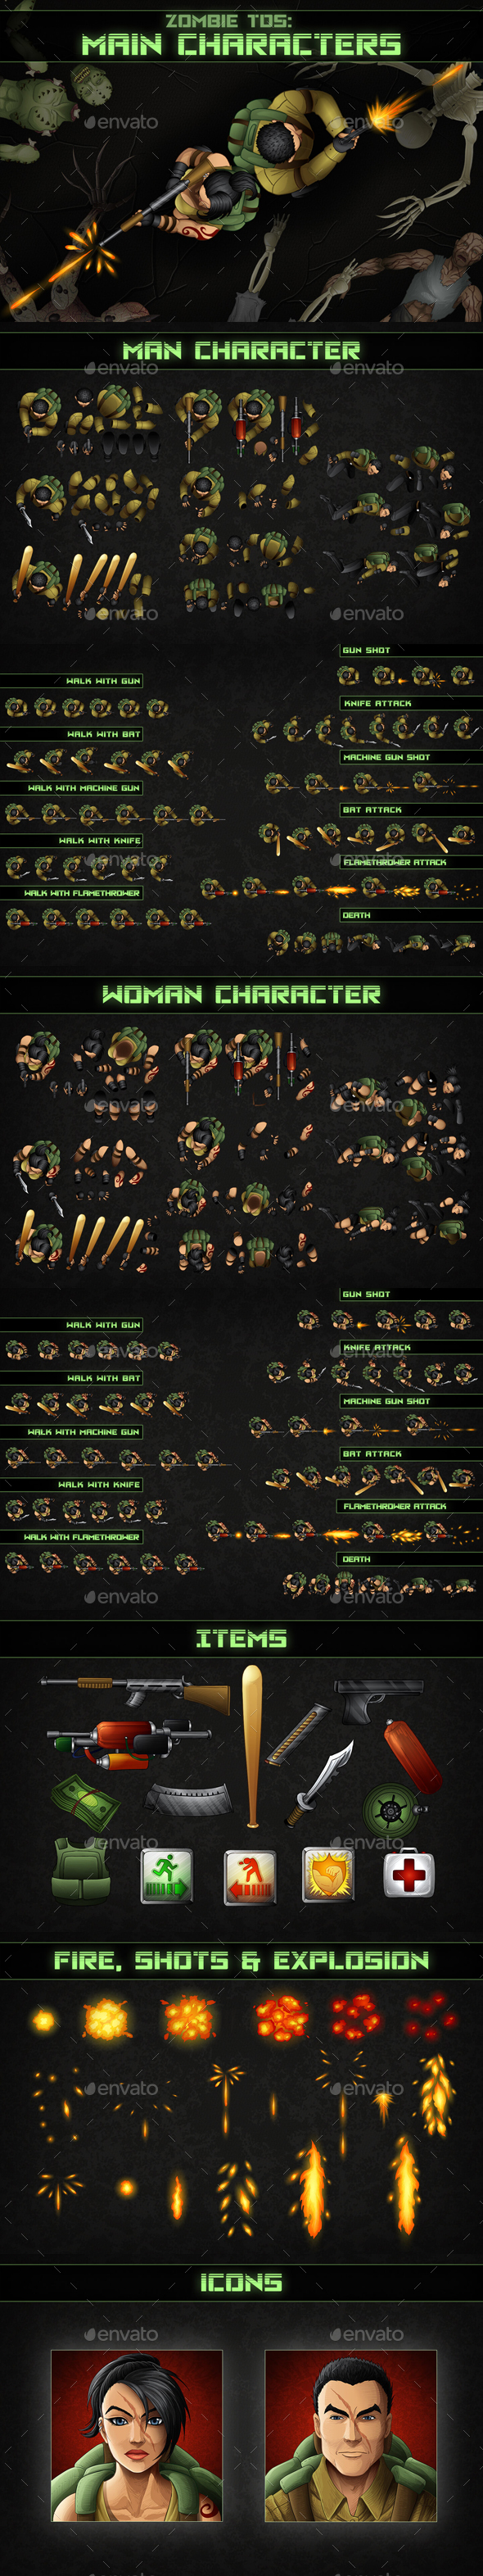 Top-Down Shooter: Main Characters - Sprites Game Assets